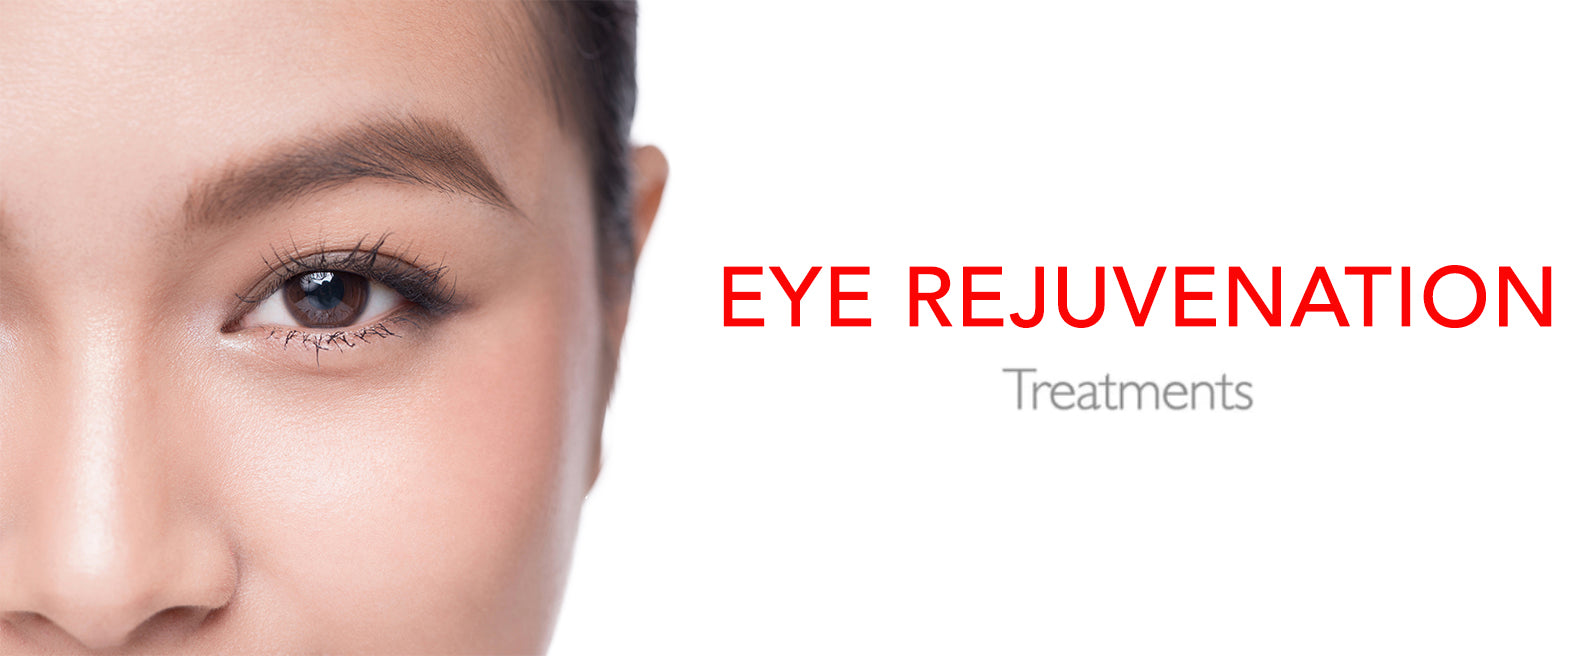 Eye Rejuvenation Treatments